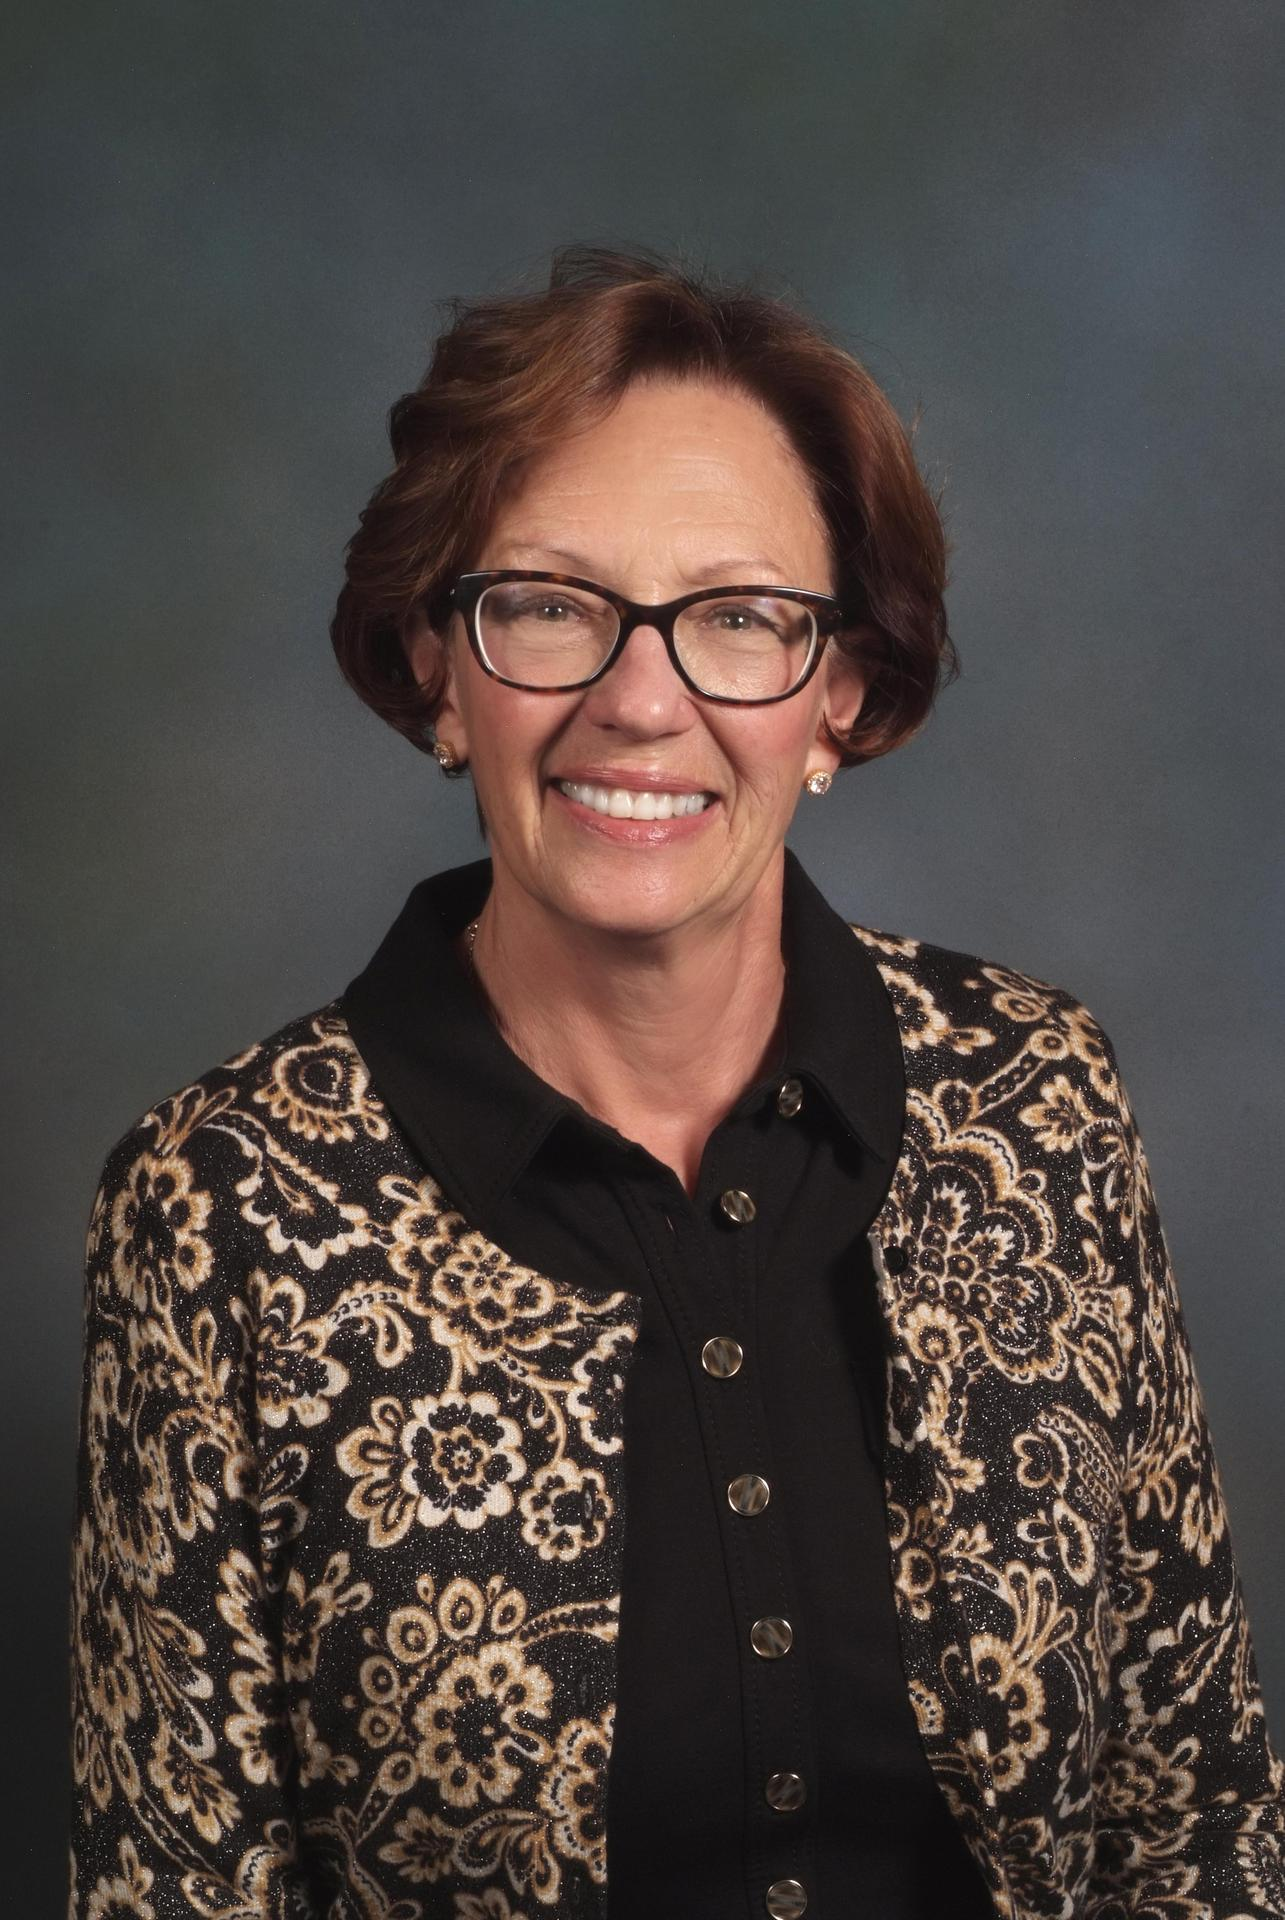 Linda Reed, Superintendent of Archuleta School District